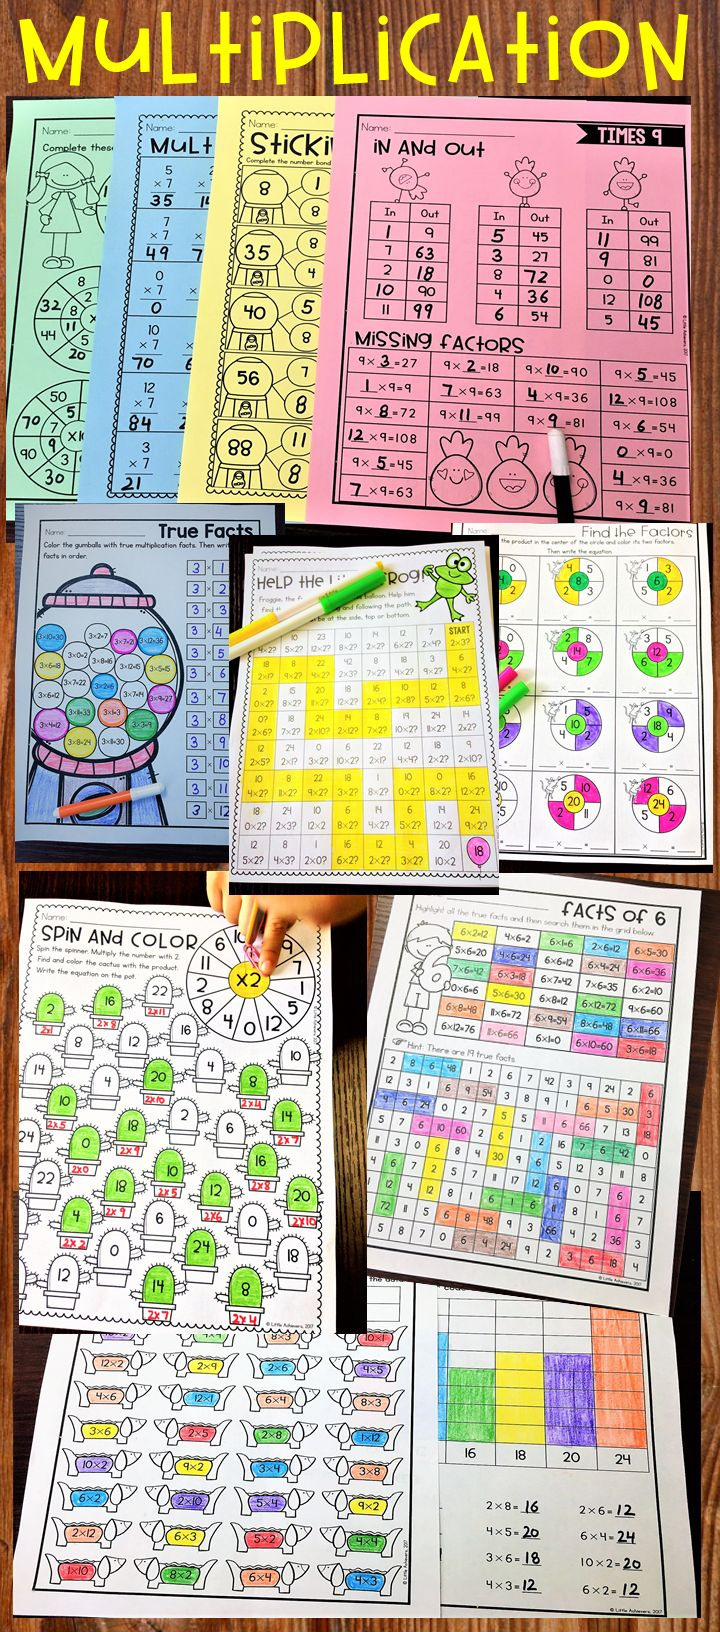 Multiplication Worksheets and Activities Bundle - This Bundle of multiplication tables from 2 to 12 is designed to help students practice, learn and master multiplication facts in a fun, engaging and easy way.